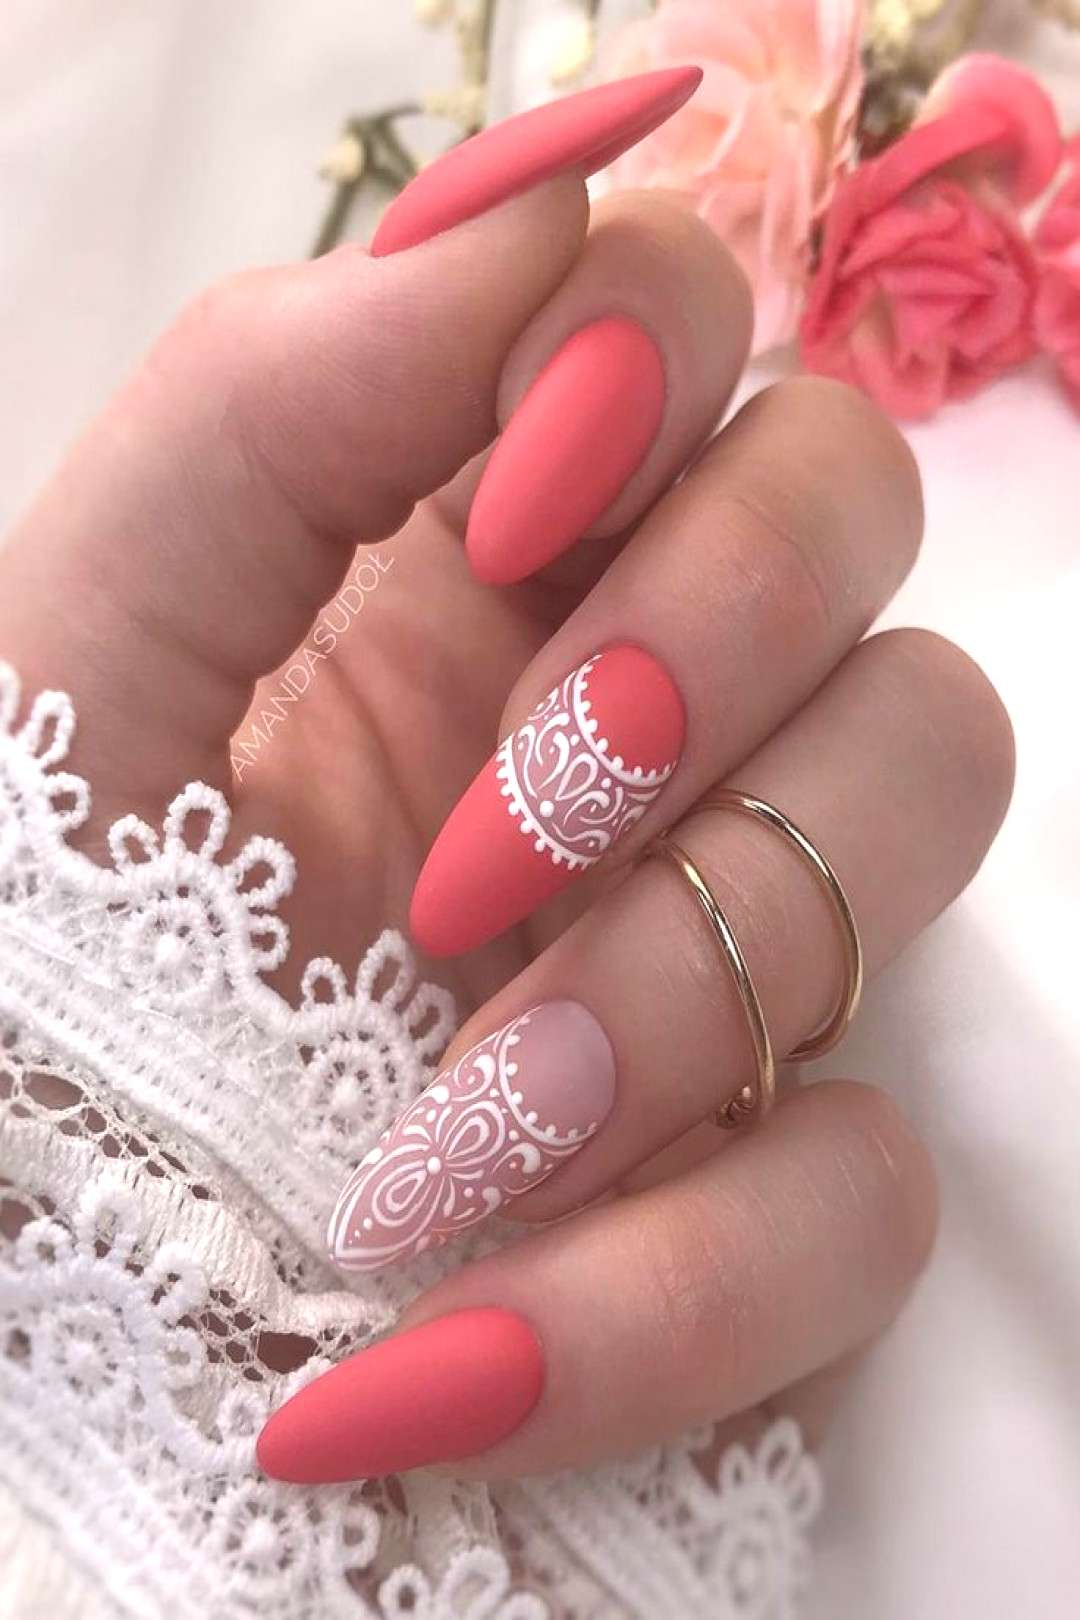 60 + Trendy Gel Nails Designs Inspirationen   - Nails when I get them redone -